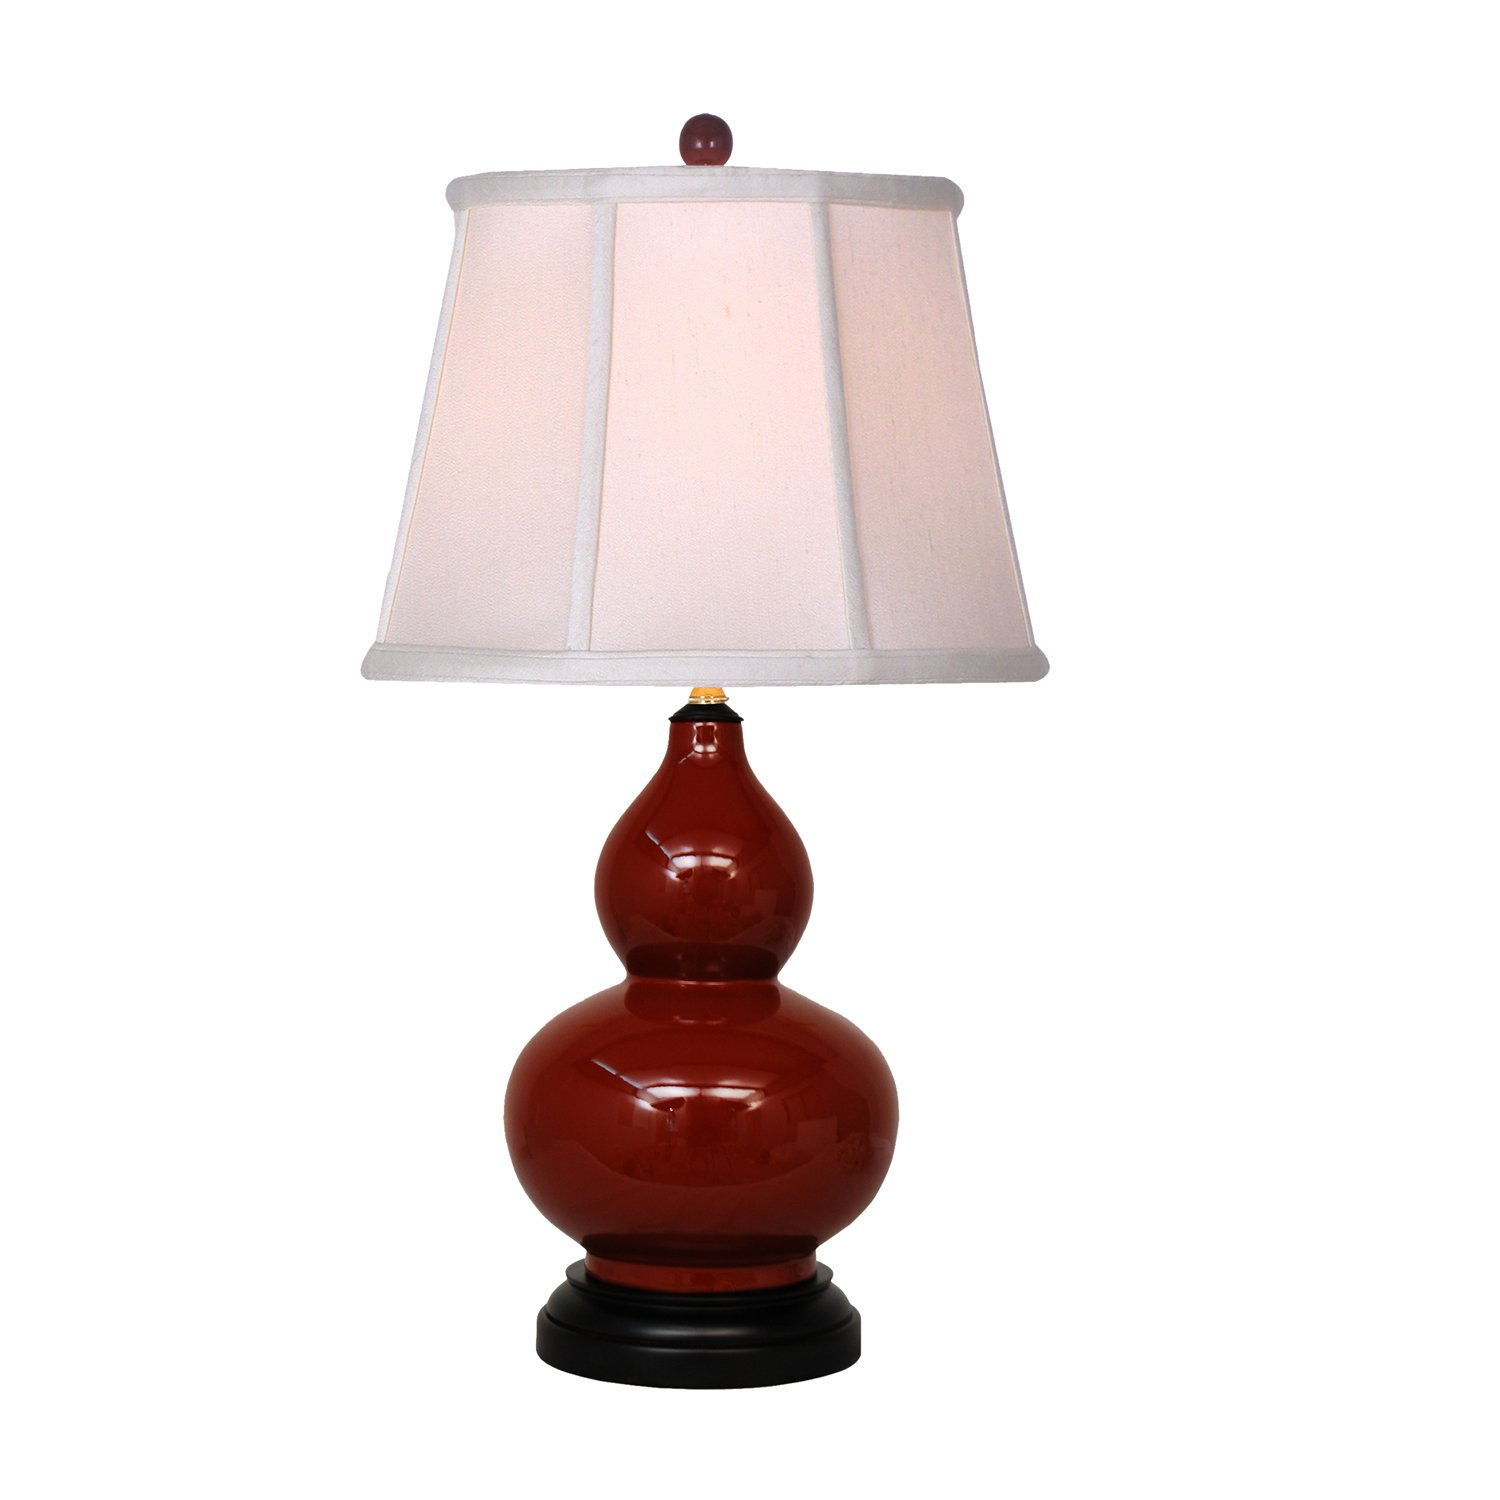 gourd table lamp photo - 6